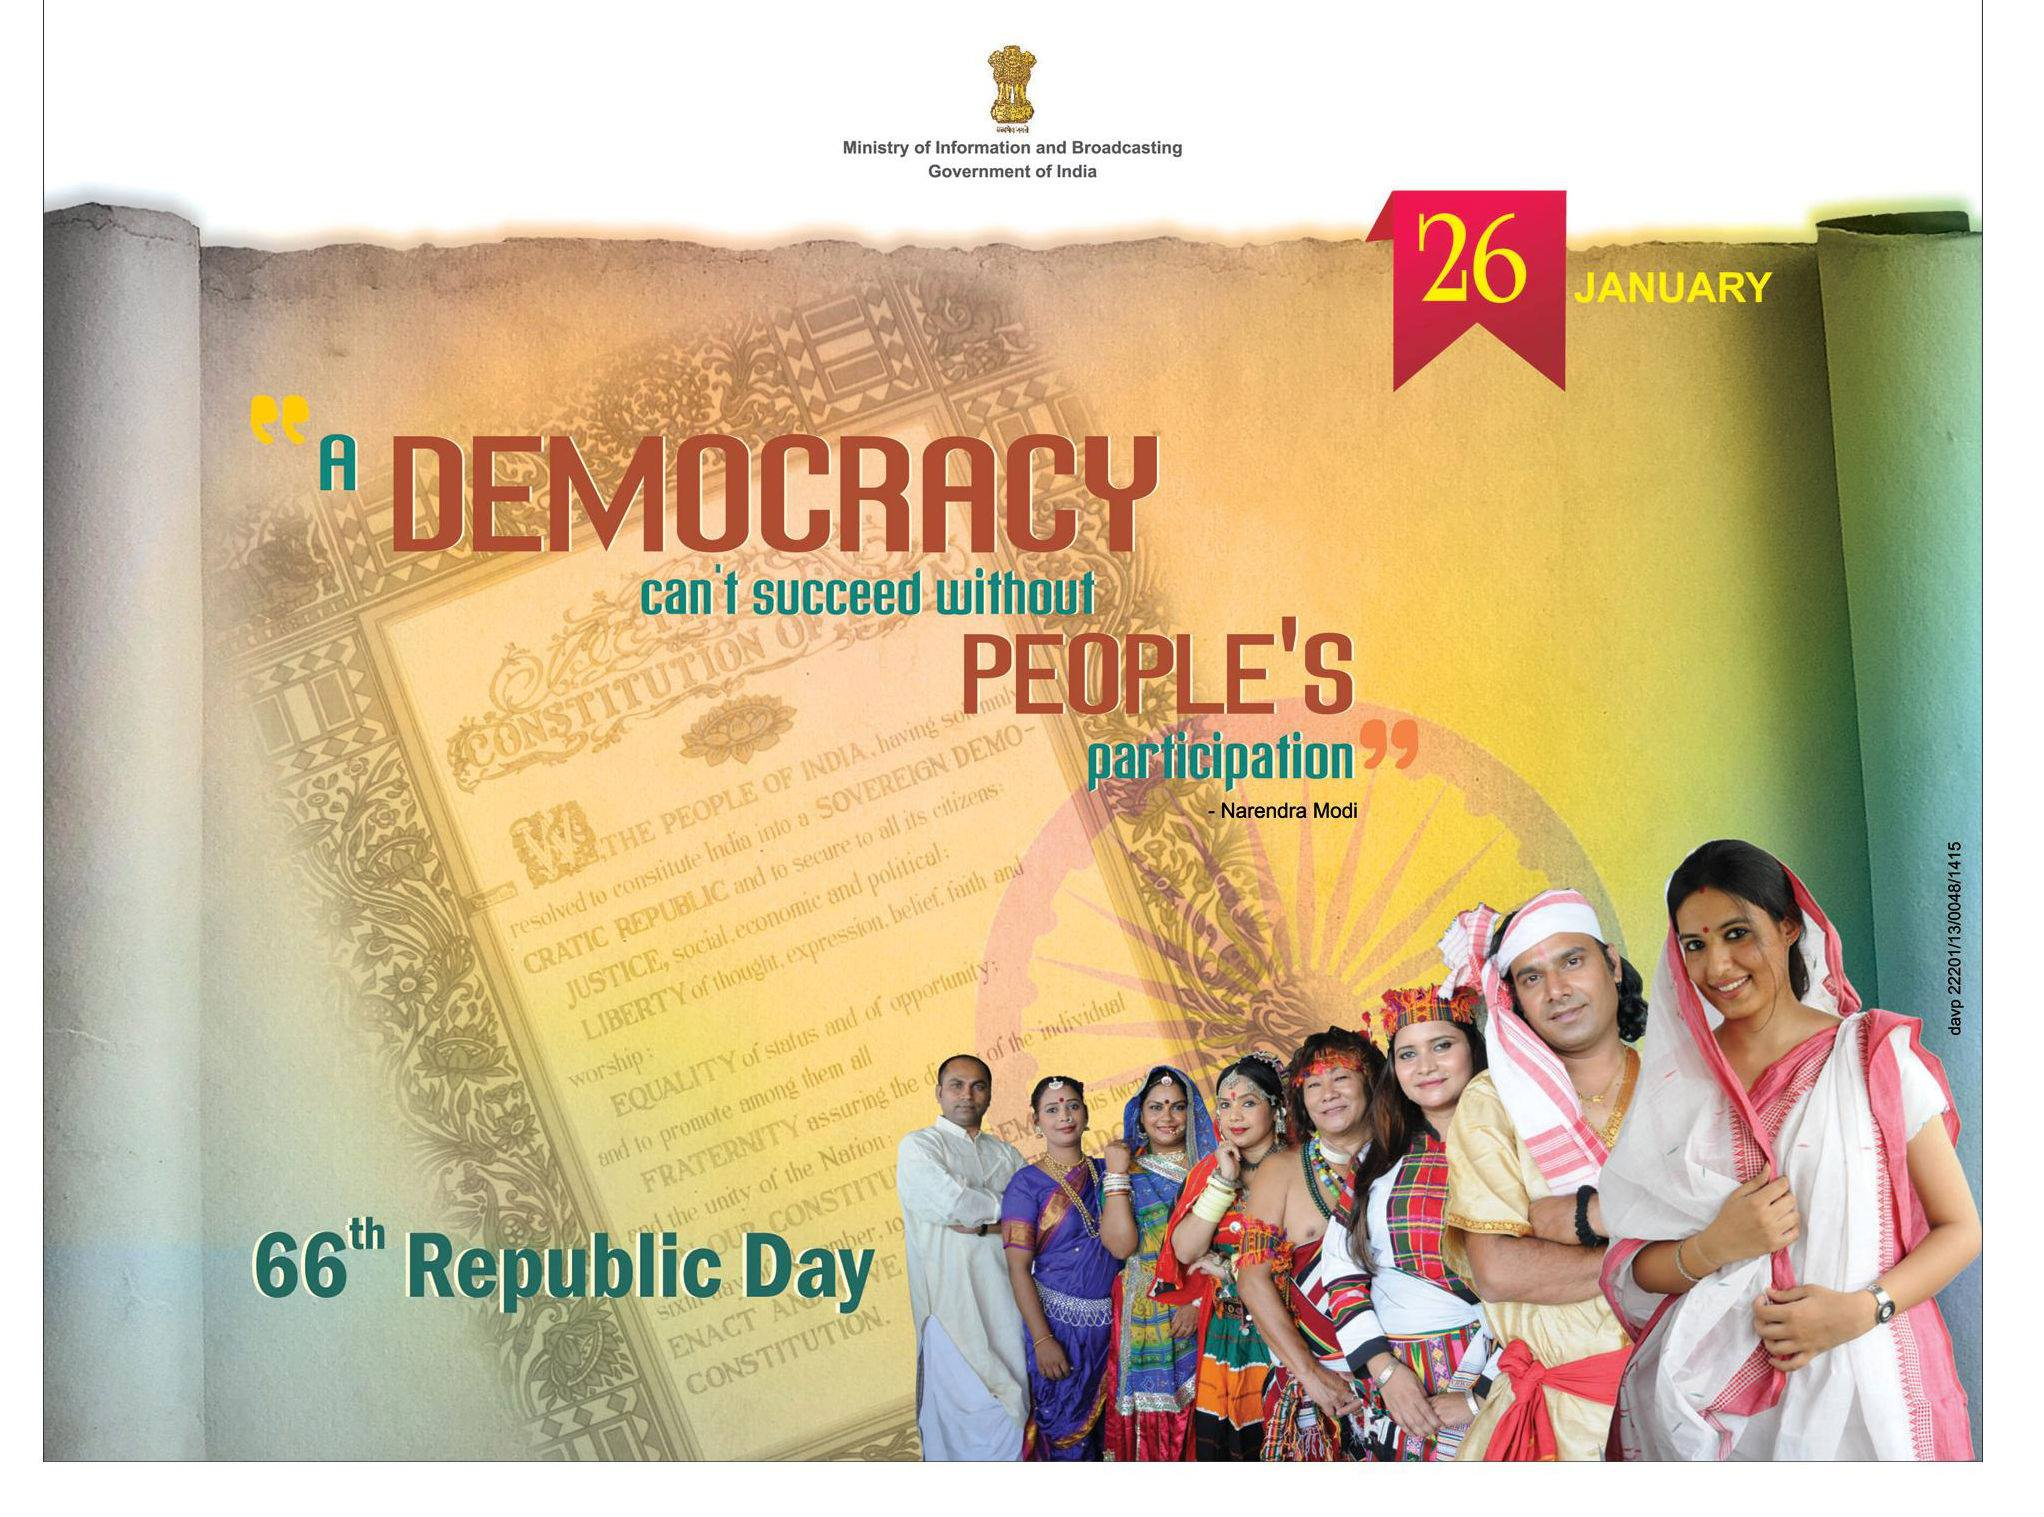 Indian Government Republic Day ad